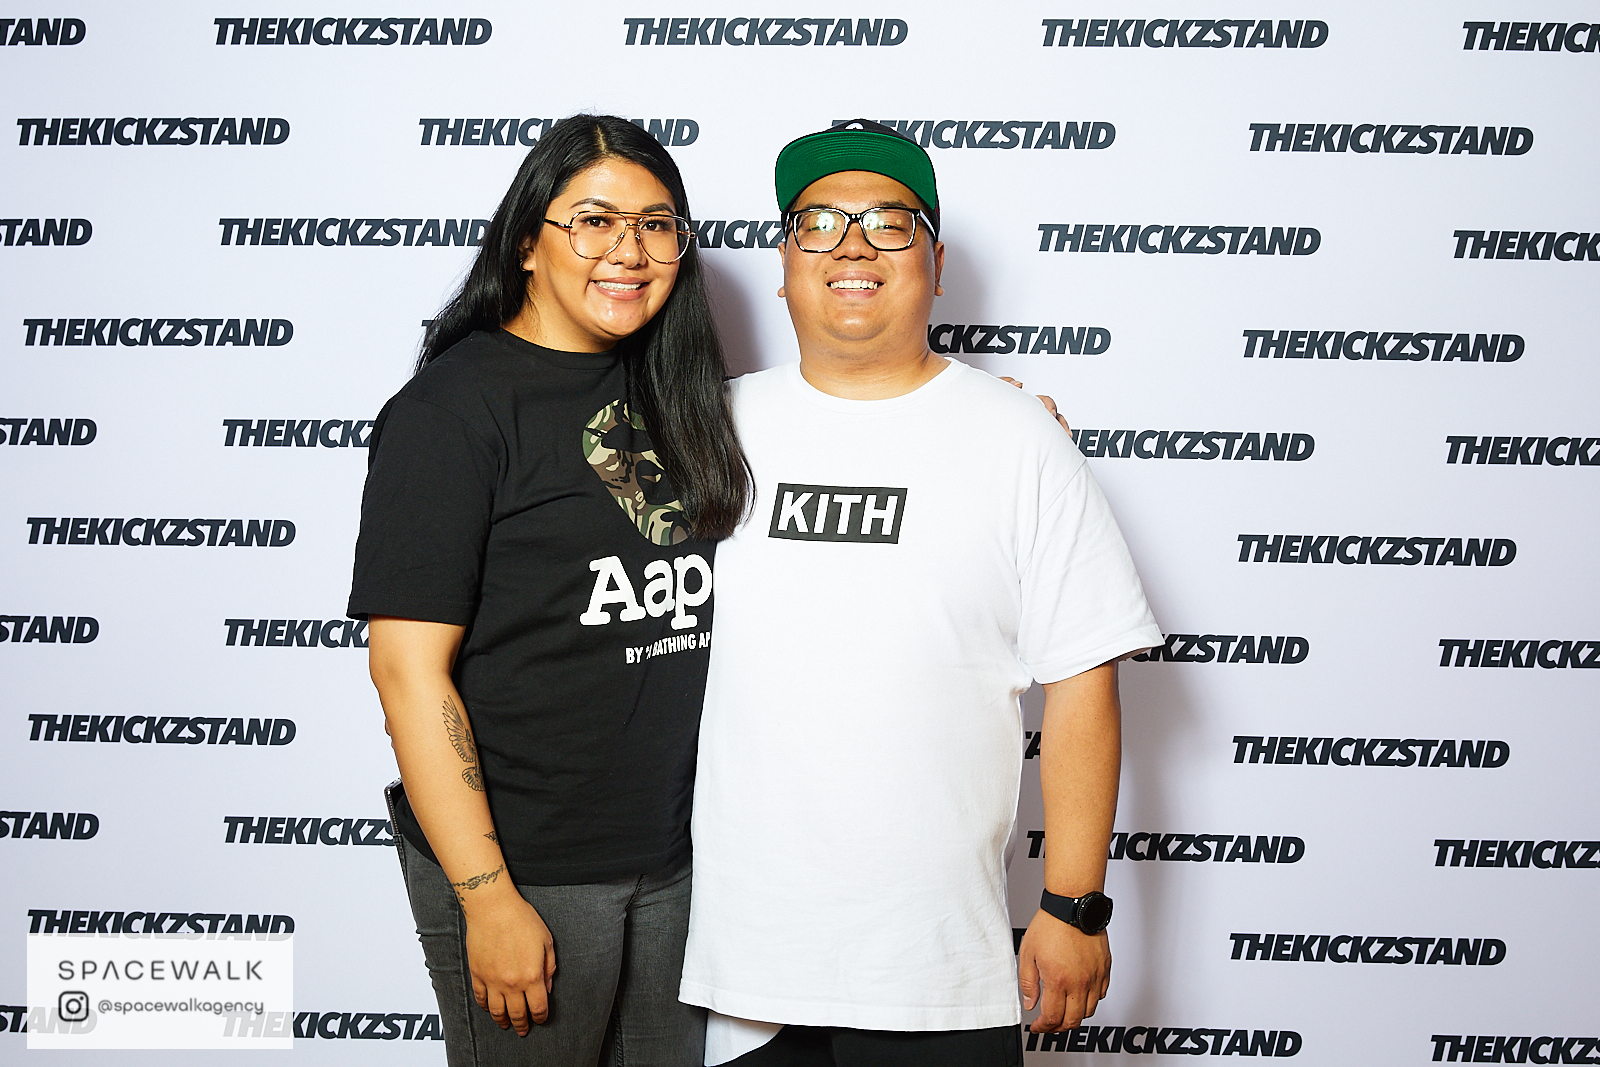 KICKZSTAND_BOOTH_064